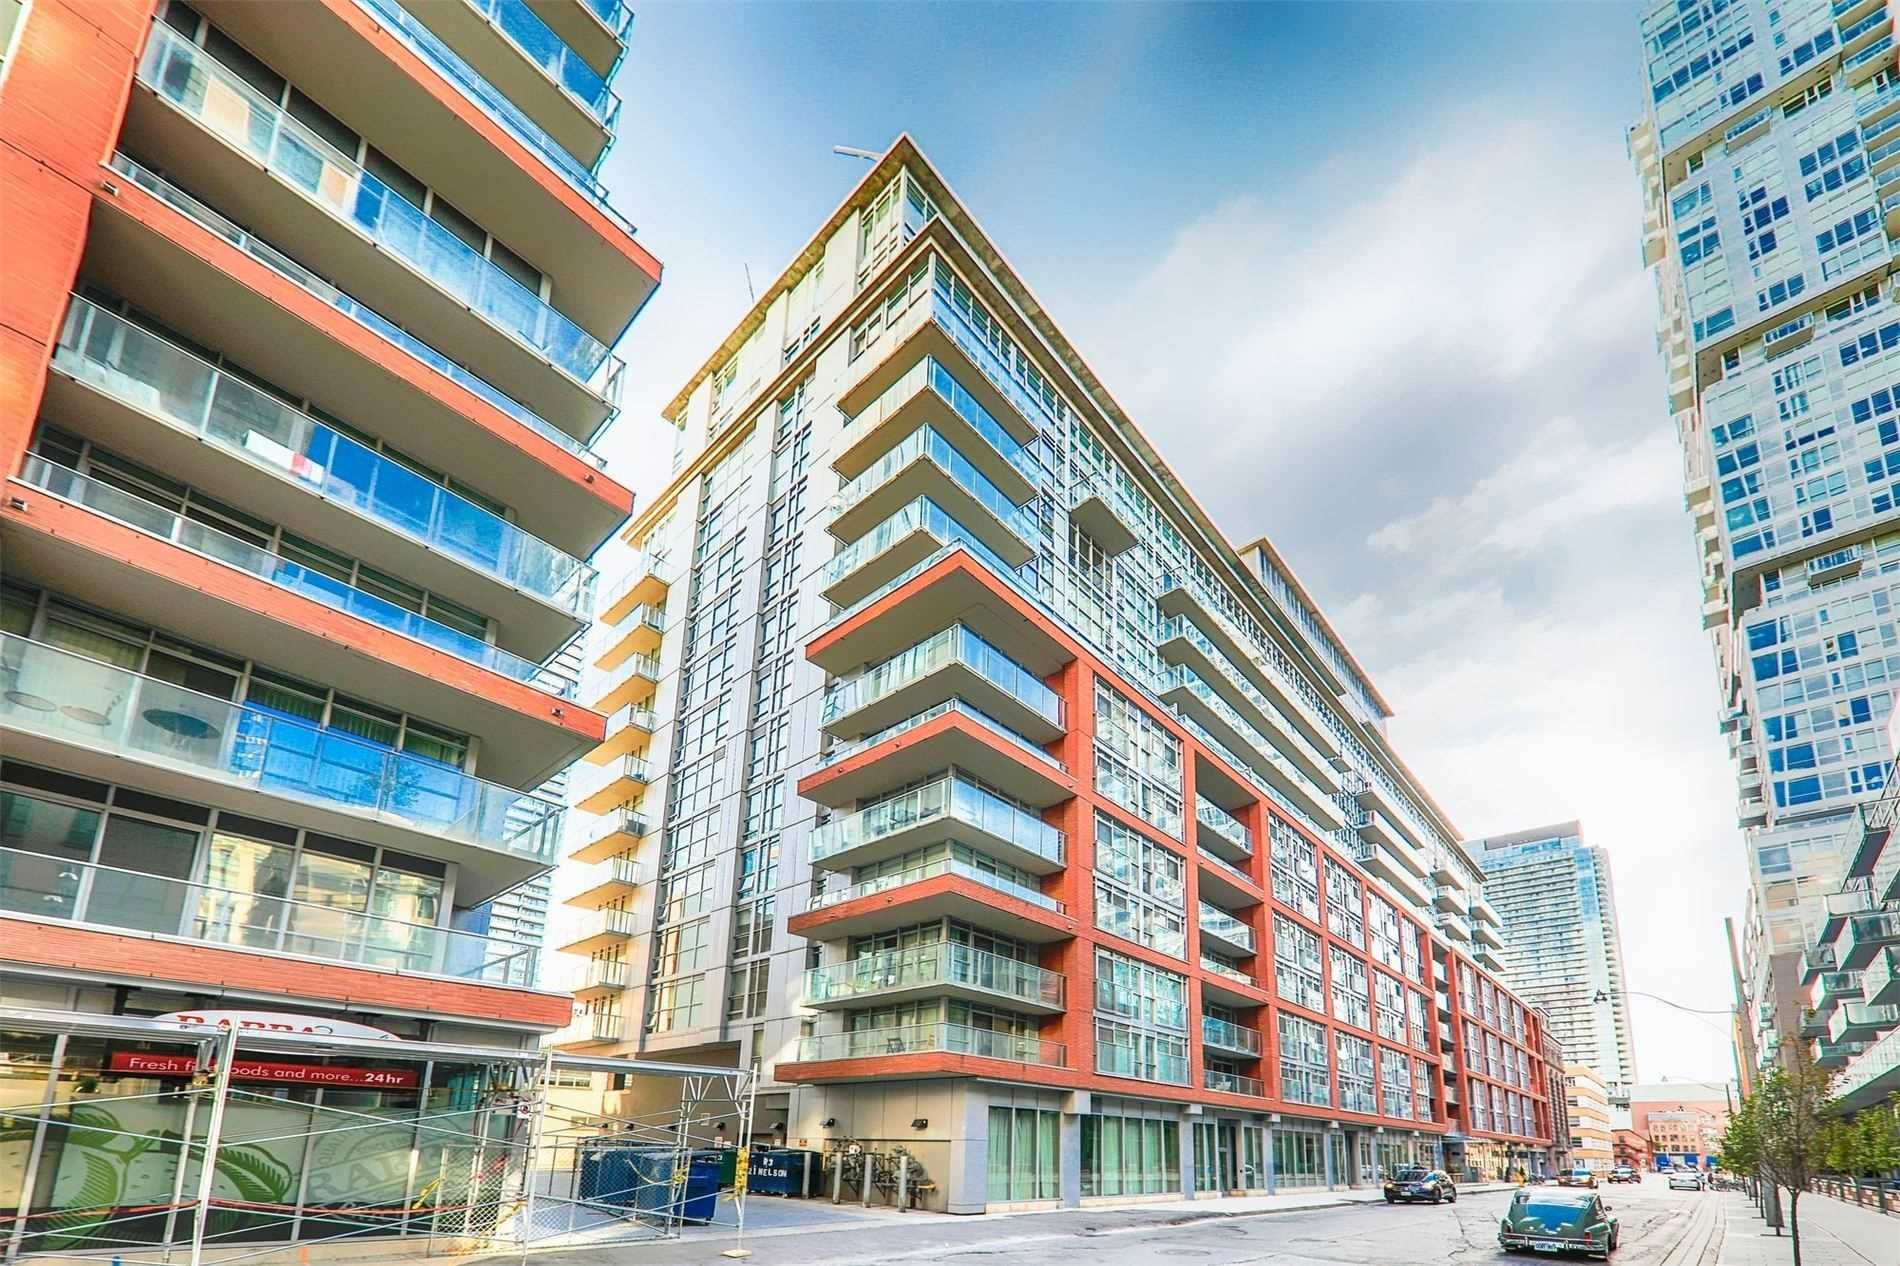 21 Nelson St, unit 407 for sale in Toronto - image #1